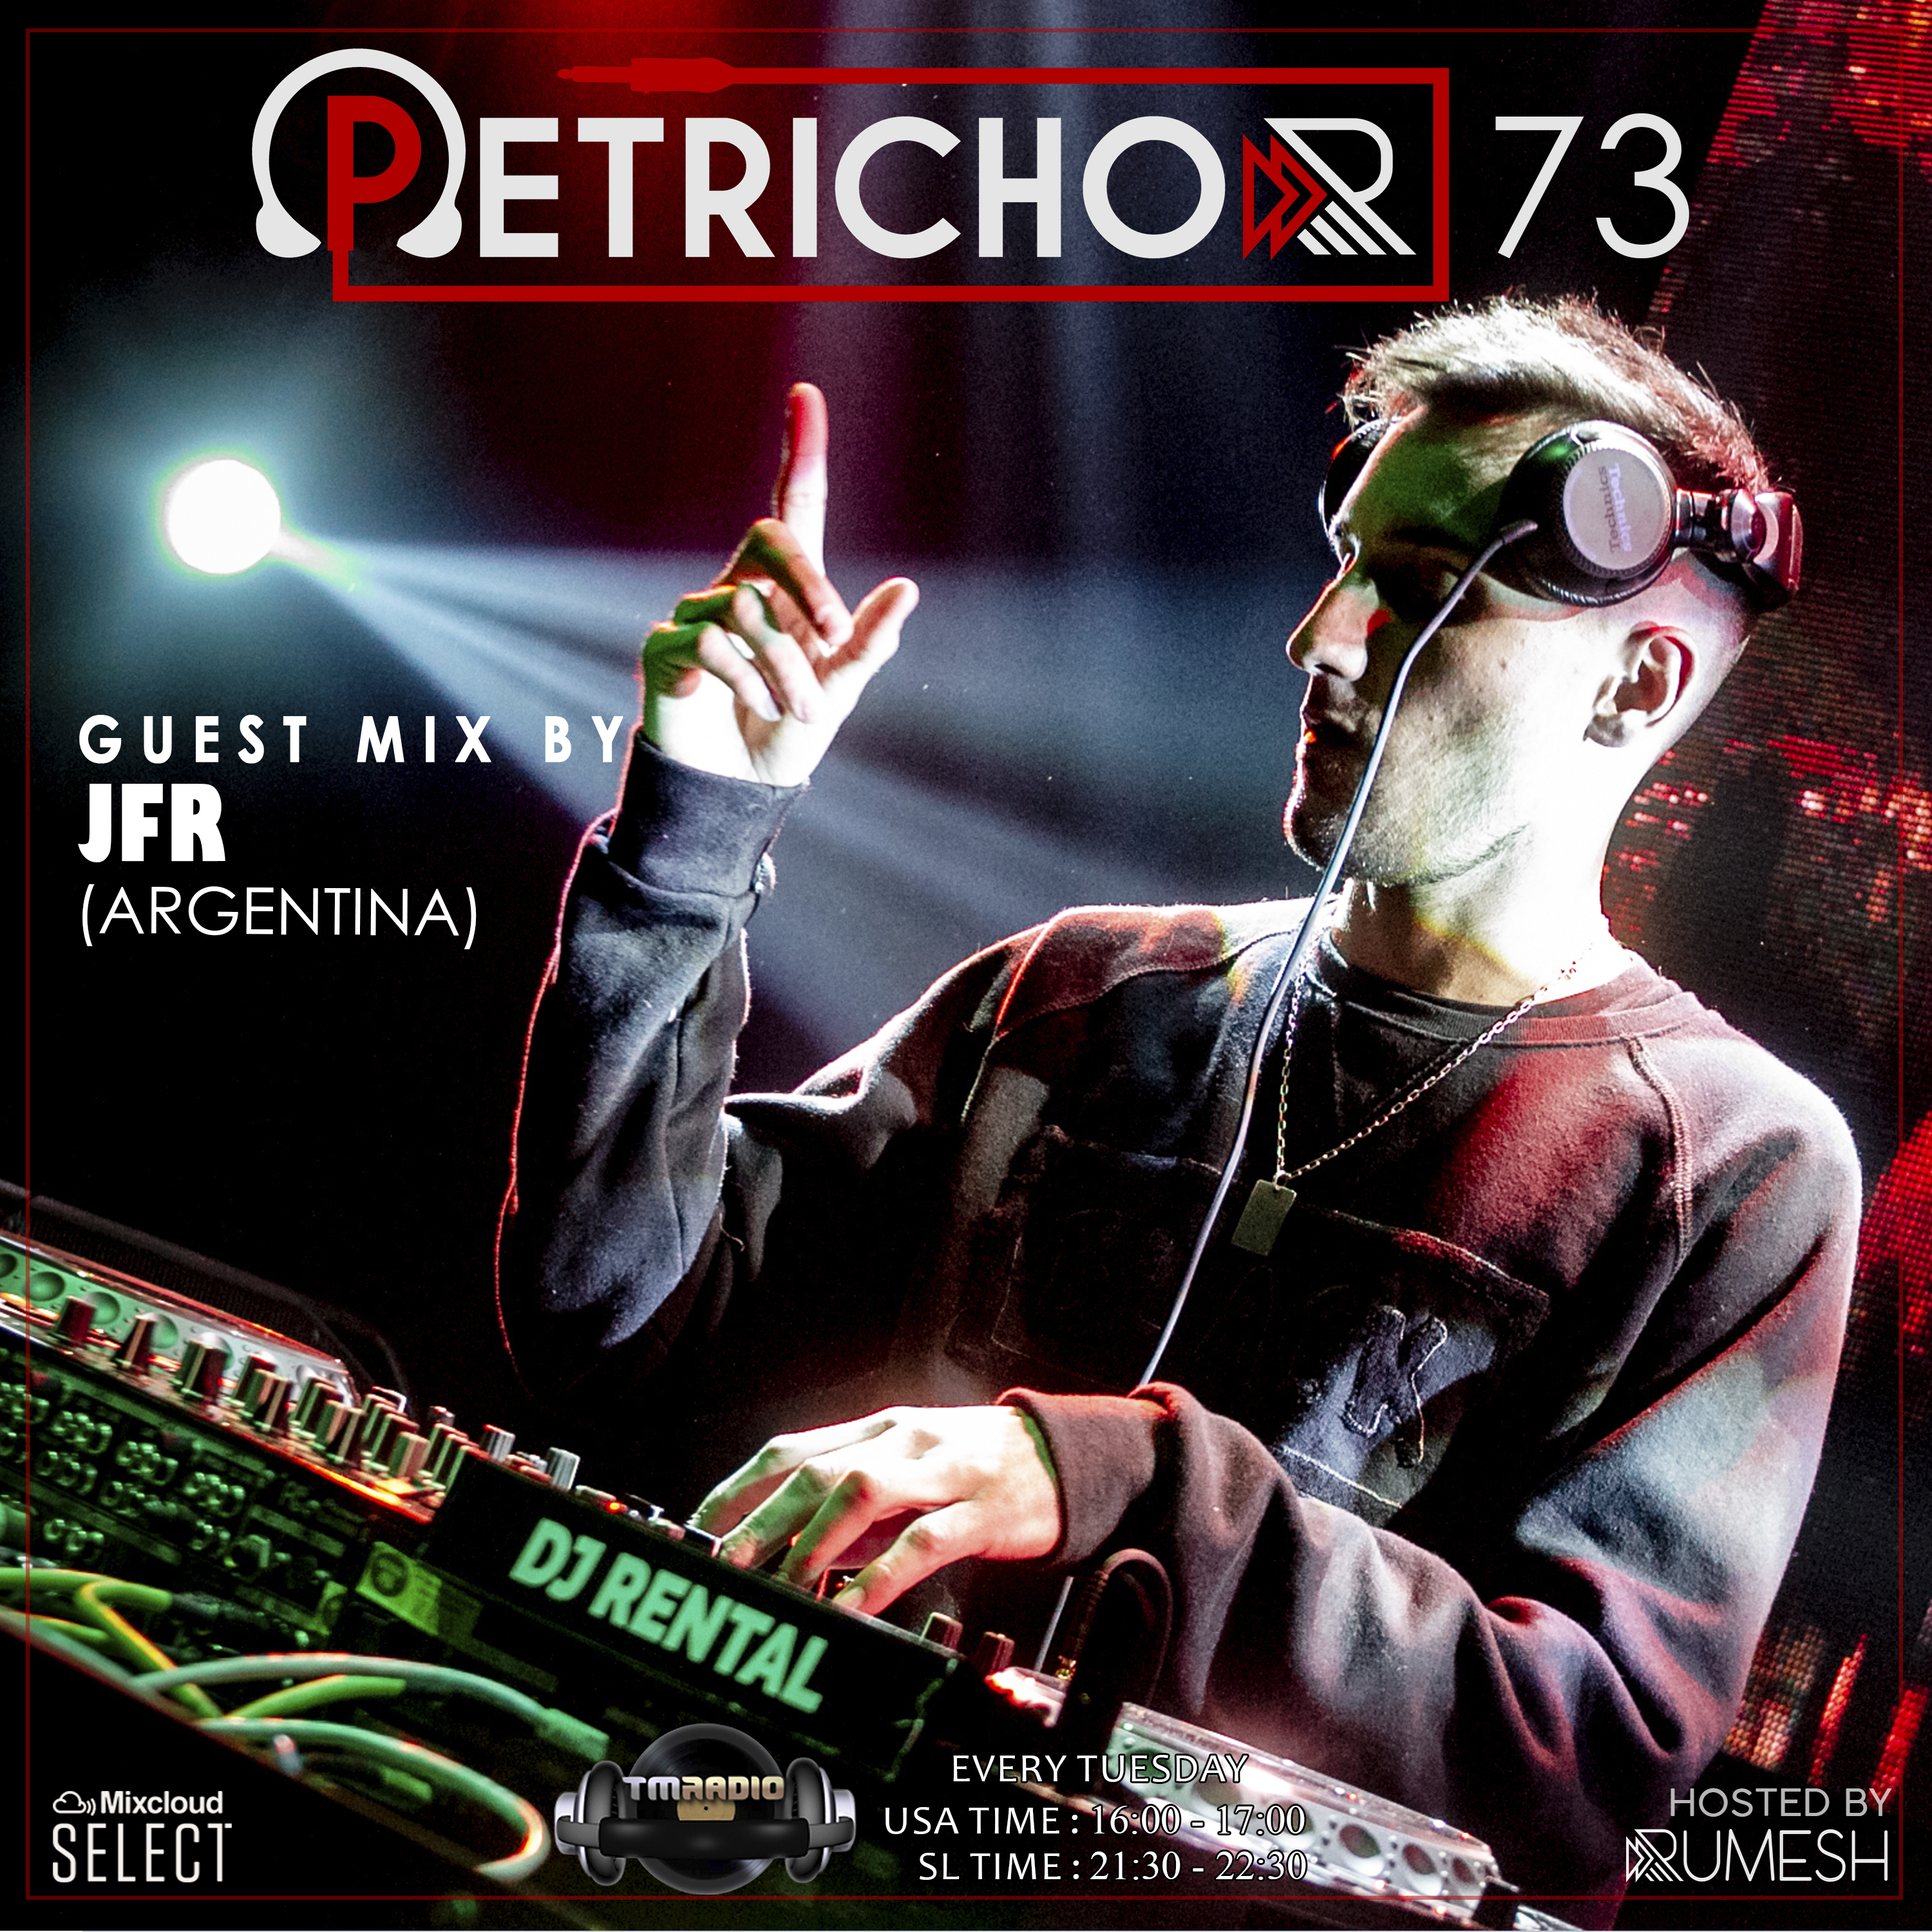 Petrichor :: Petrichor 73 Guest Mix by JFR -(Argentina) (aired on March 31st, 2020) banner logo